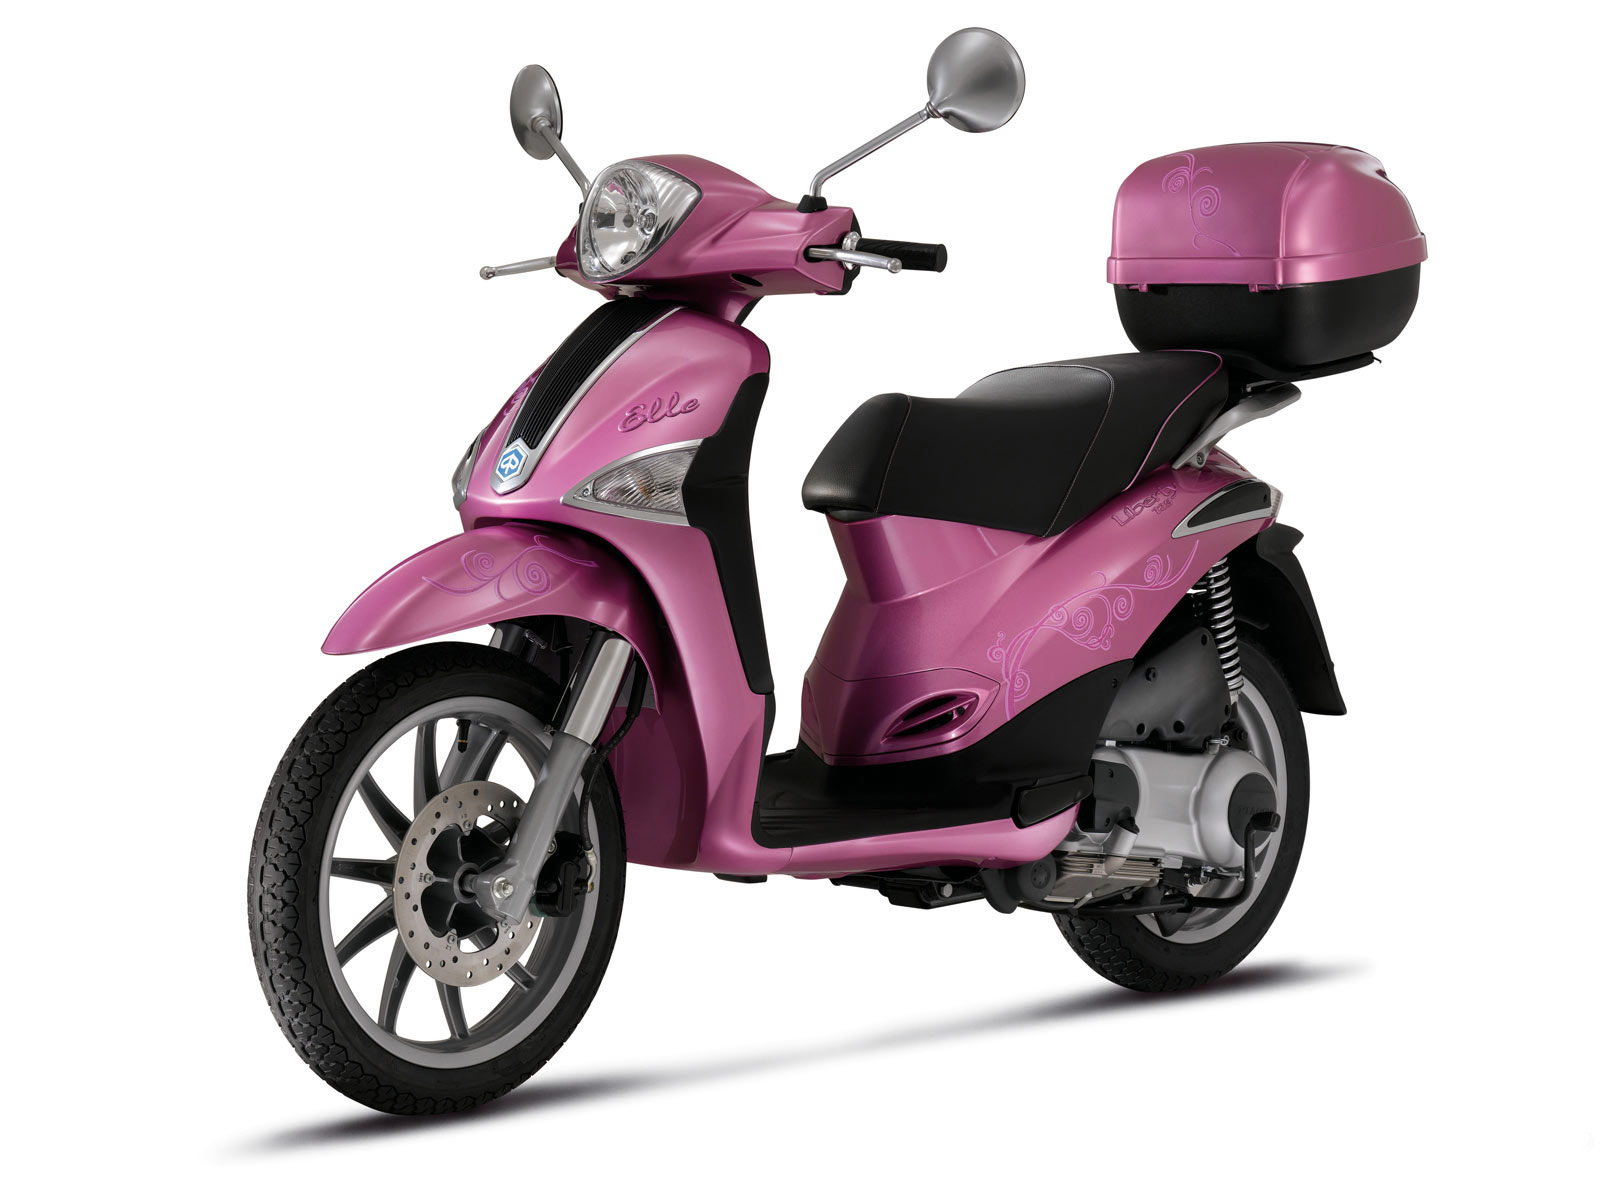 Mopeds: 2010 Piaggio Liberty Elle Scooter